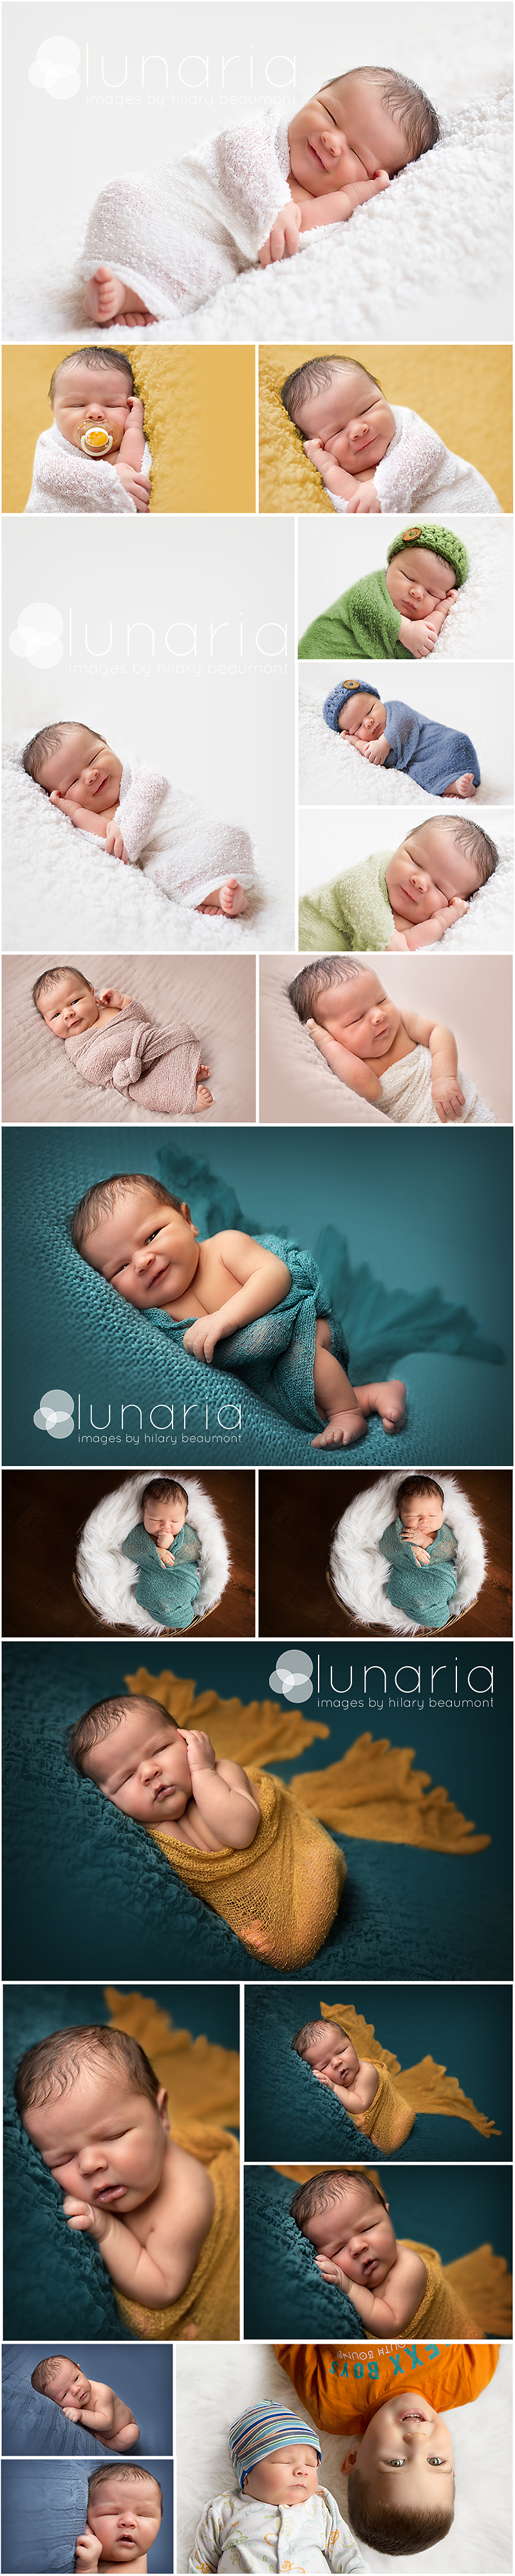 newborn boy portrait collage shot by Hilary Beaumont of Lunaria Photography in Whitby Ontario.